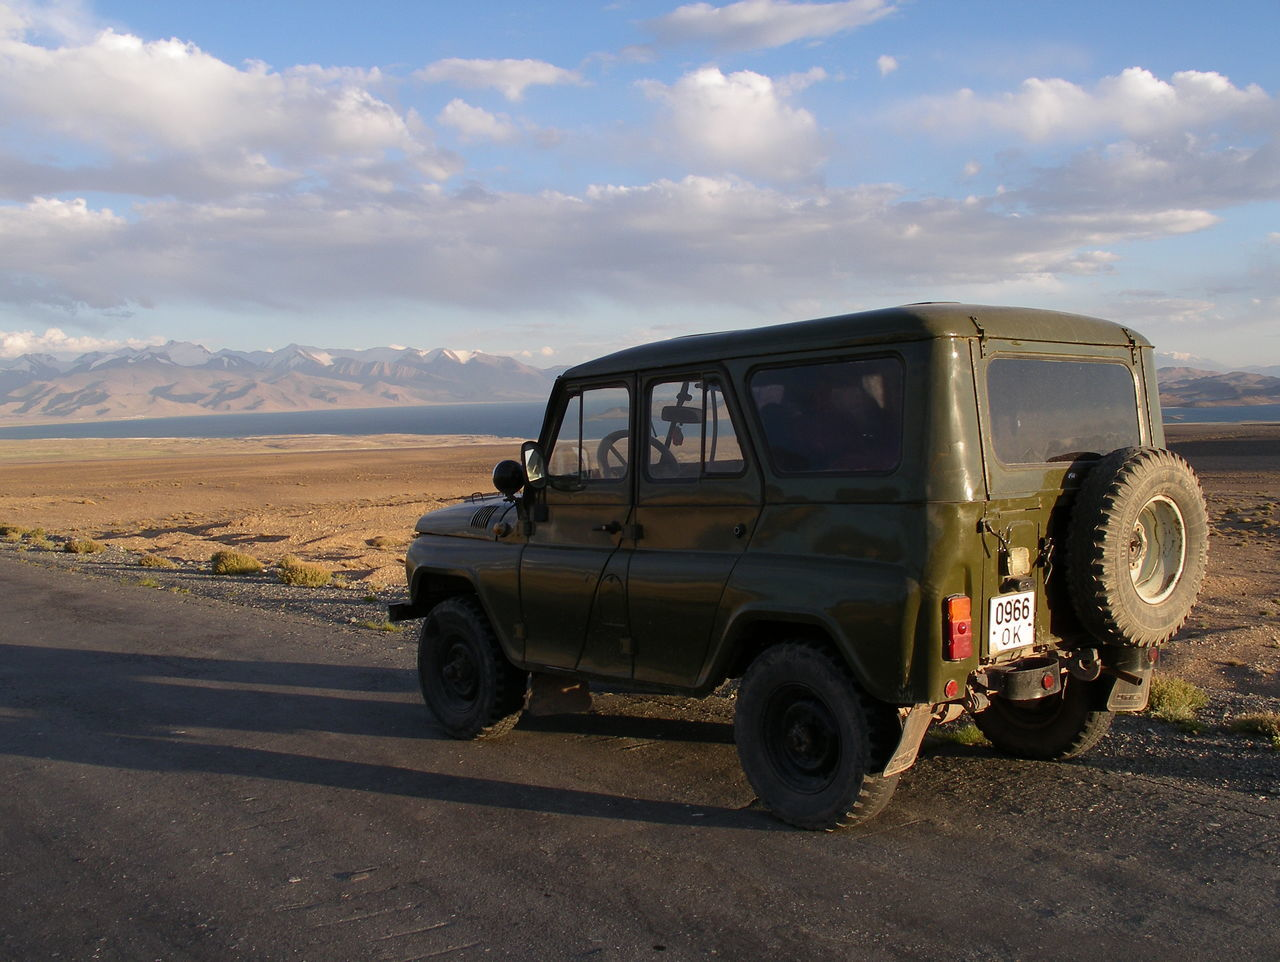 Russian 4x4 on the Pamir Highway, Tajikistan 4x4 Adventure Arid Climate Car Cloud - Sky Day Desert Land Vehicle Murghob Nature No People Off-road Vehicle Off-the-beaten-path Outdoors Pamir Pamir Highway Pamir Mountains Scenics Sky Sunset Tajikistan Transportation Fresh On Eyeem